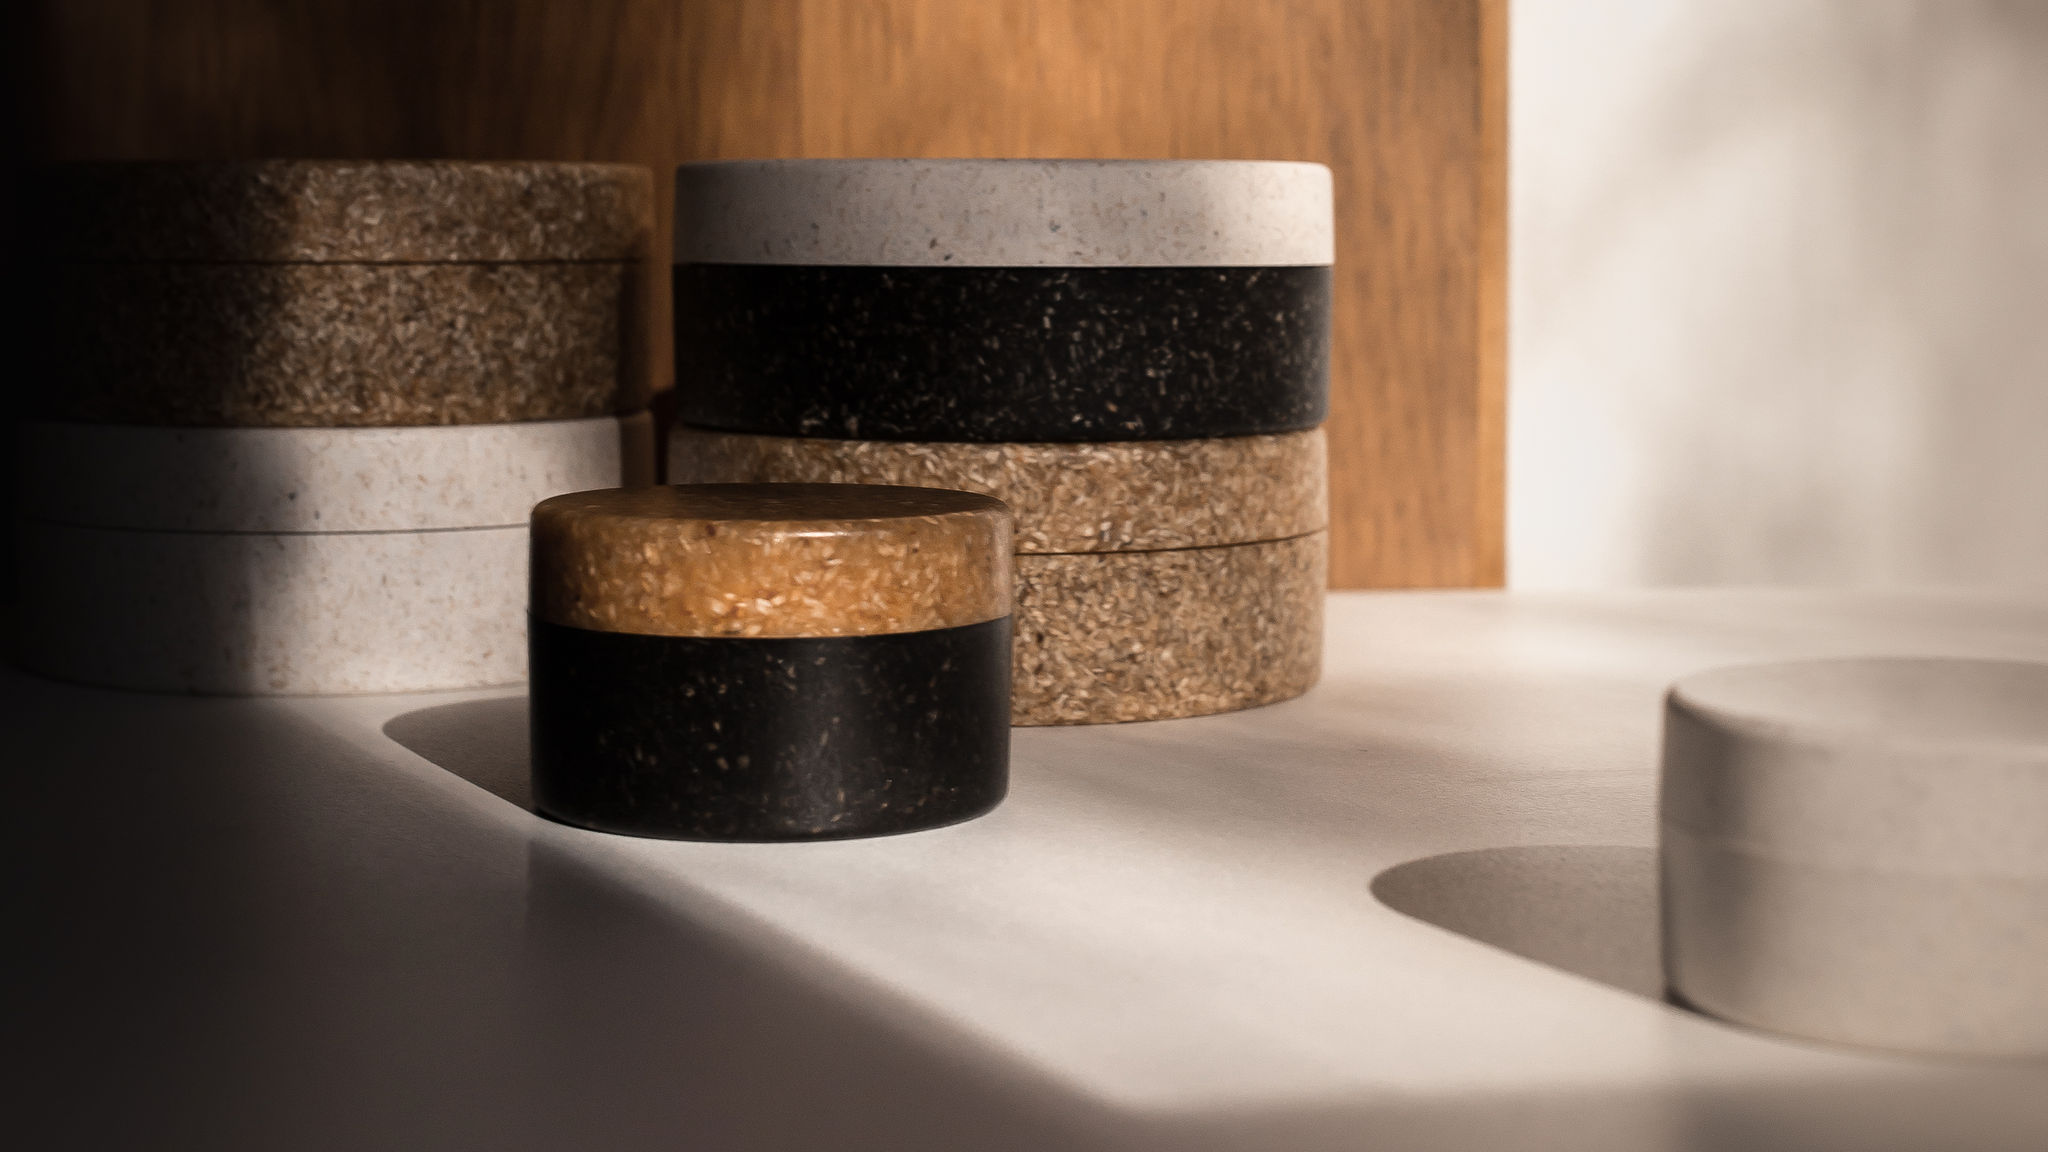 Sulapac Premium jars from FSC certified wood and biodegradable binders